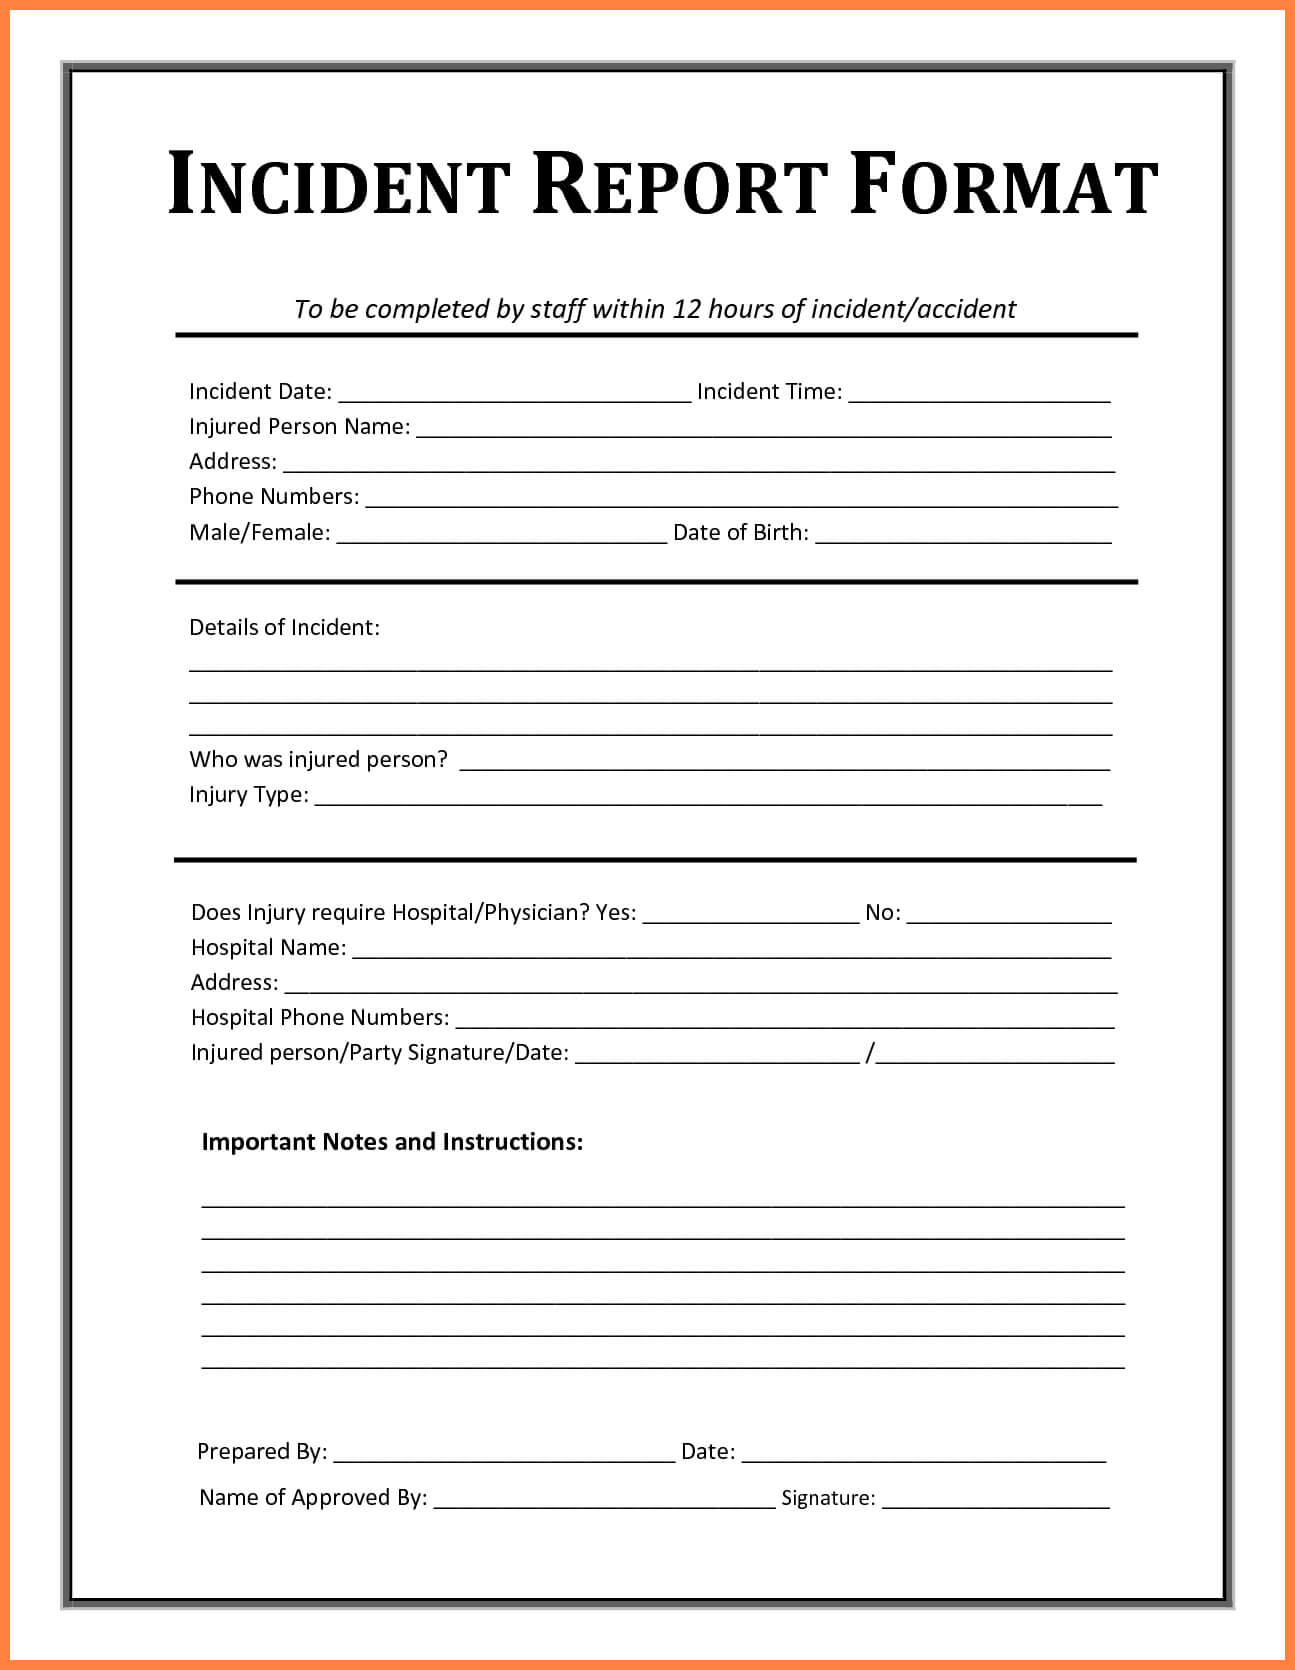 Incident Report Template - Free Incident Report Templates inside Office Incident Report Template